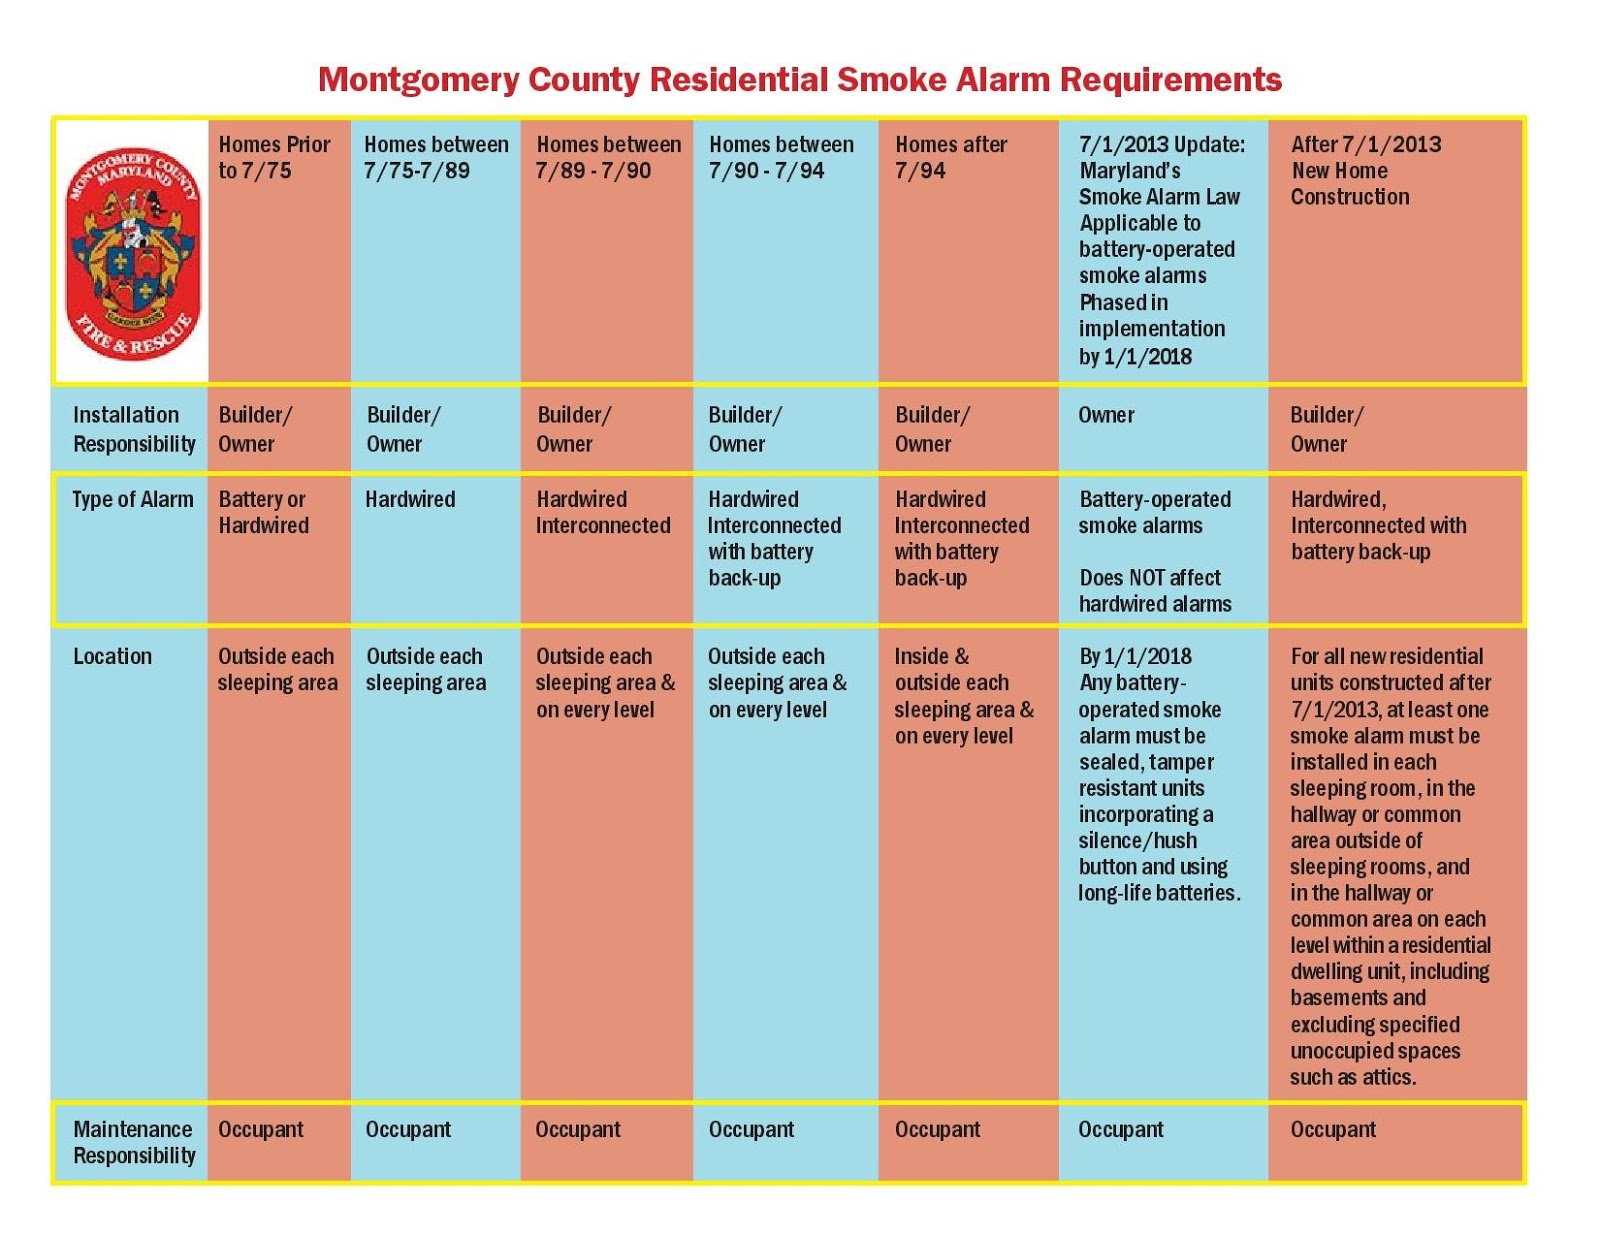 Montgomery County Fire Rescue News Information Updates To House Wiring Smoke Alarms Alarm Requirements Are Based On The Code When Was Built As A Result Can Be Somewhat Confusing And It Is Critical